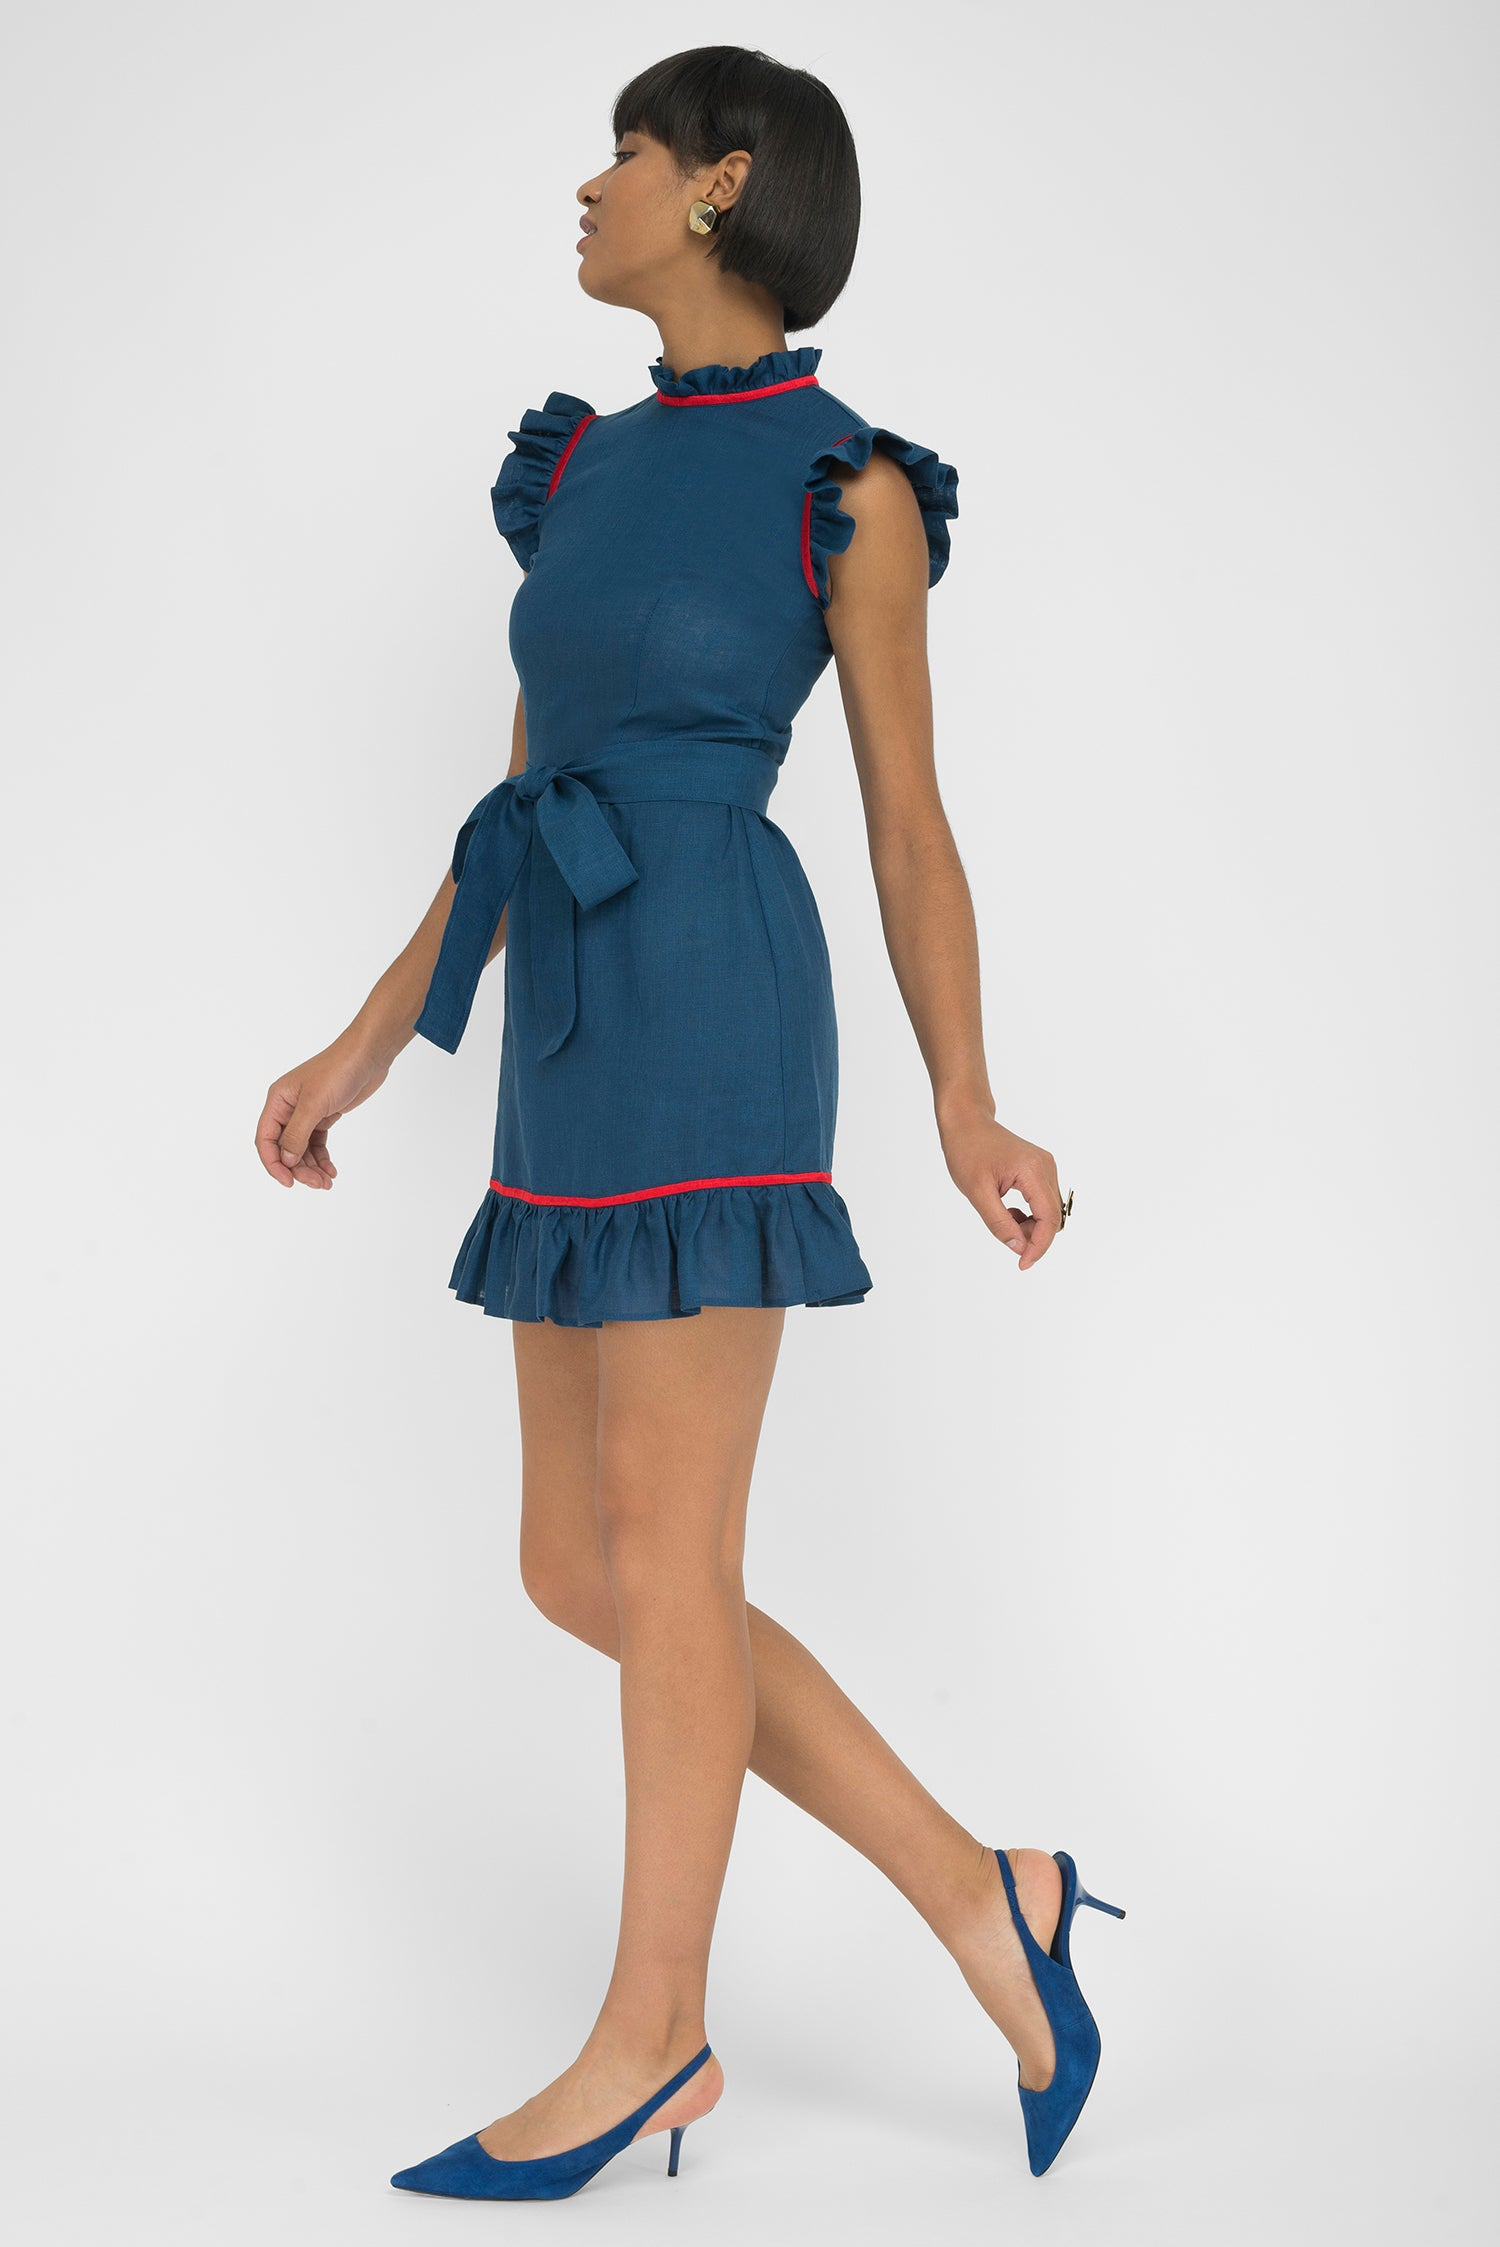 FANM MON BELEK Indigo Blue Linen Choker Neck Embroidered Mini Dress